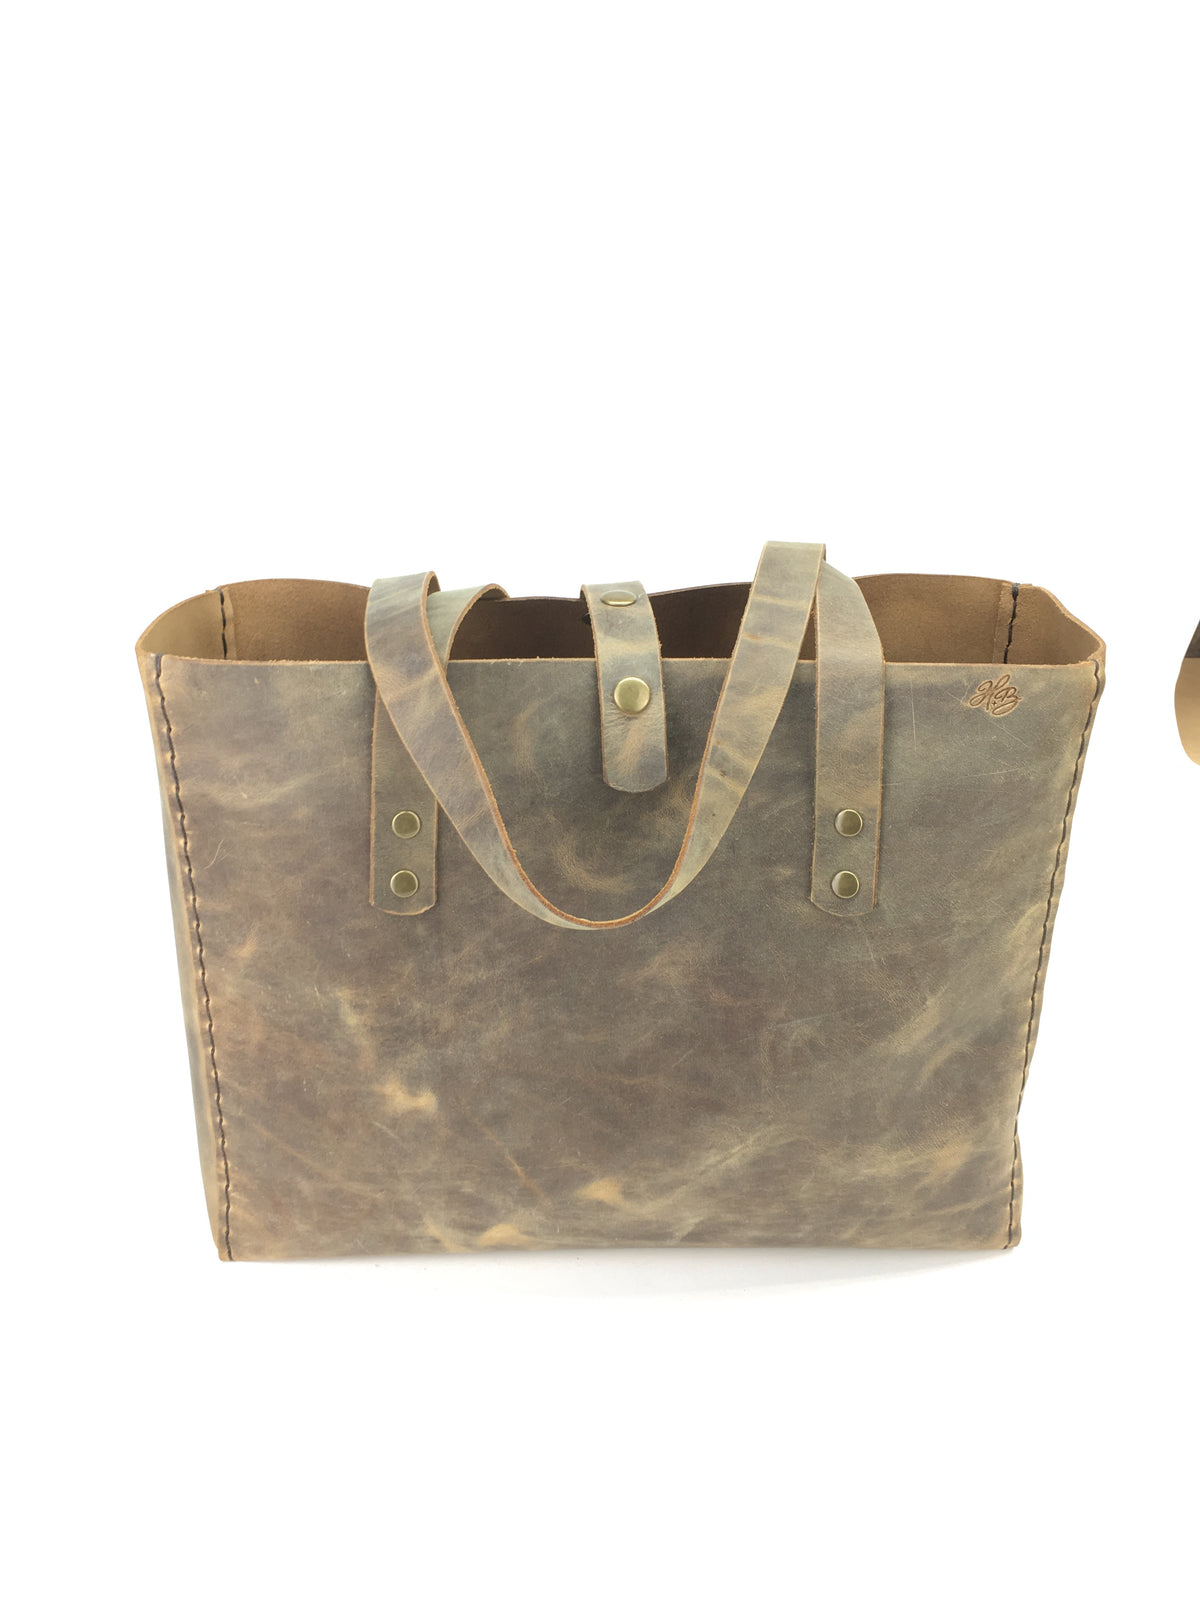 LEATHER TOTE BAG | H+B CLASSIC DISTRESSED BROWN TOTE BAG